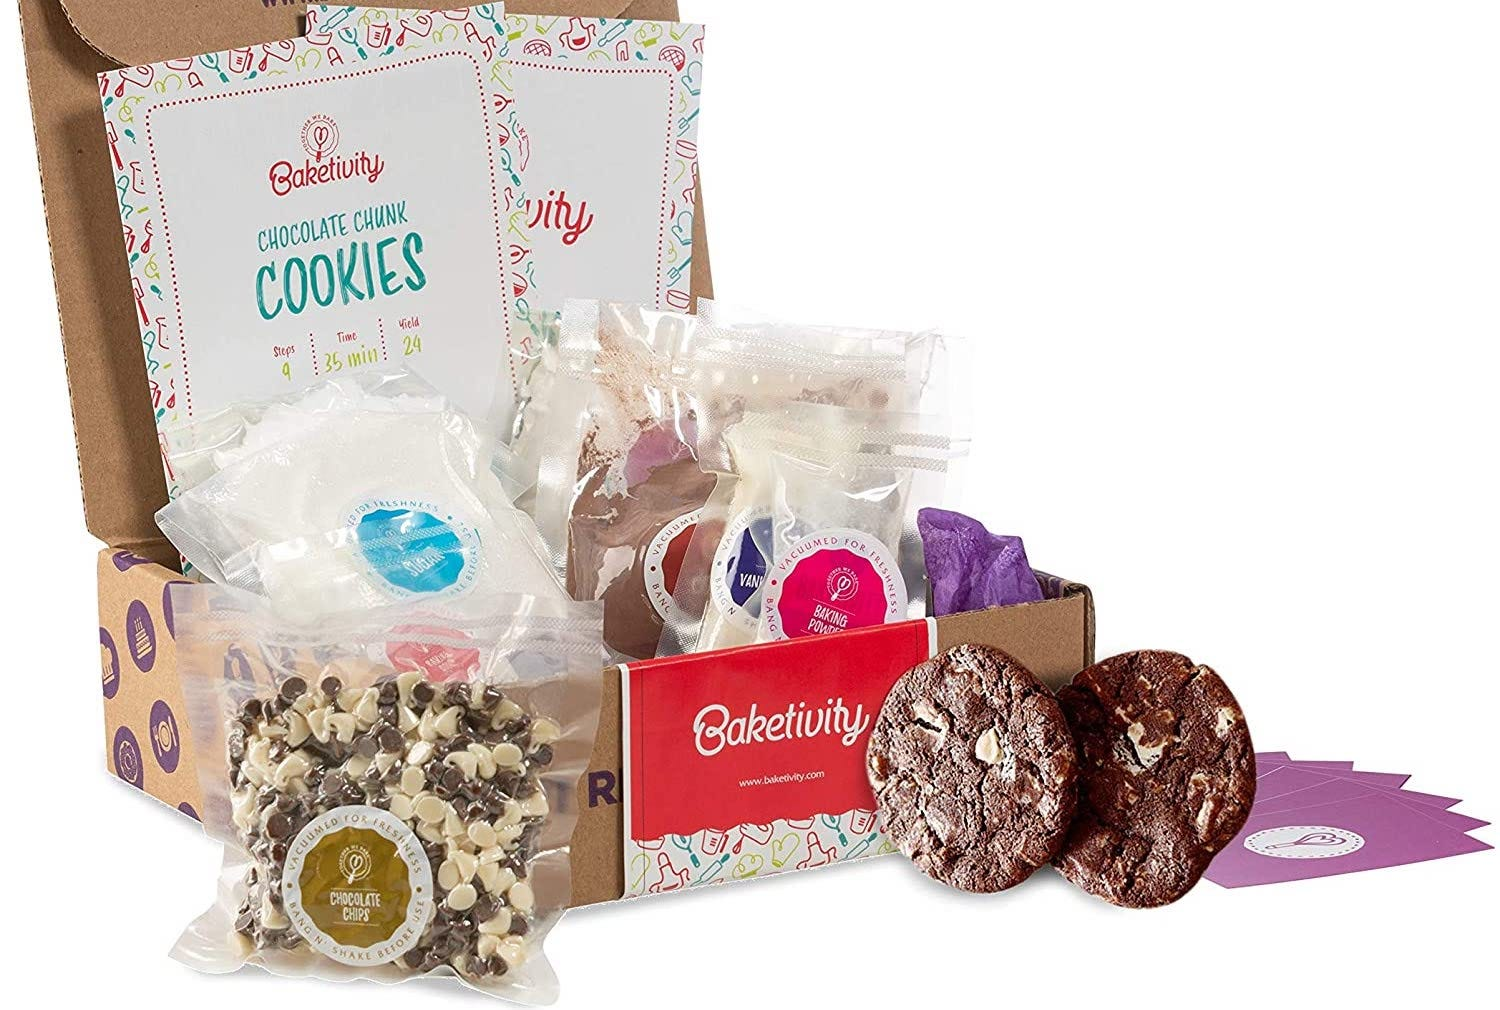 A cardboard box, open to reveal bags of baking supplies, with a bag of chocolate chips and two cookies in front